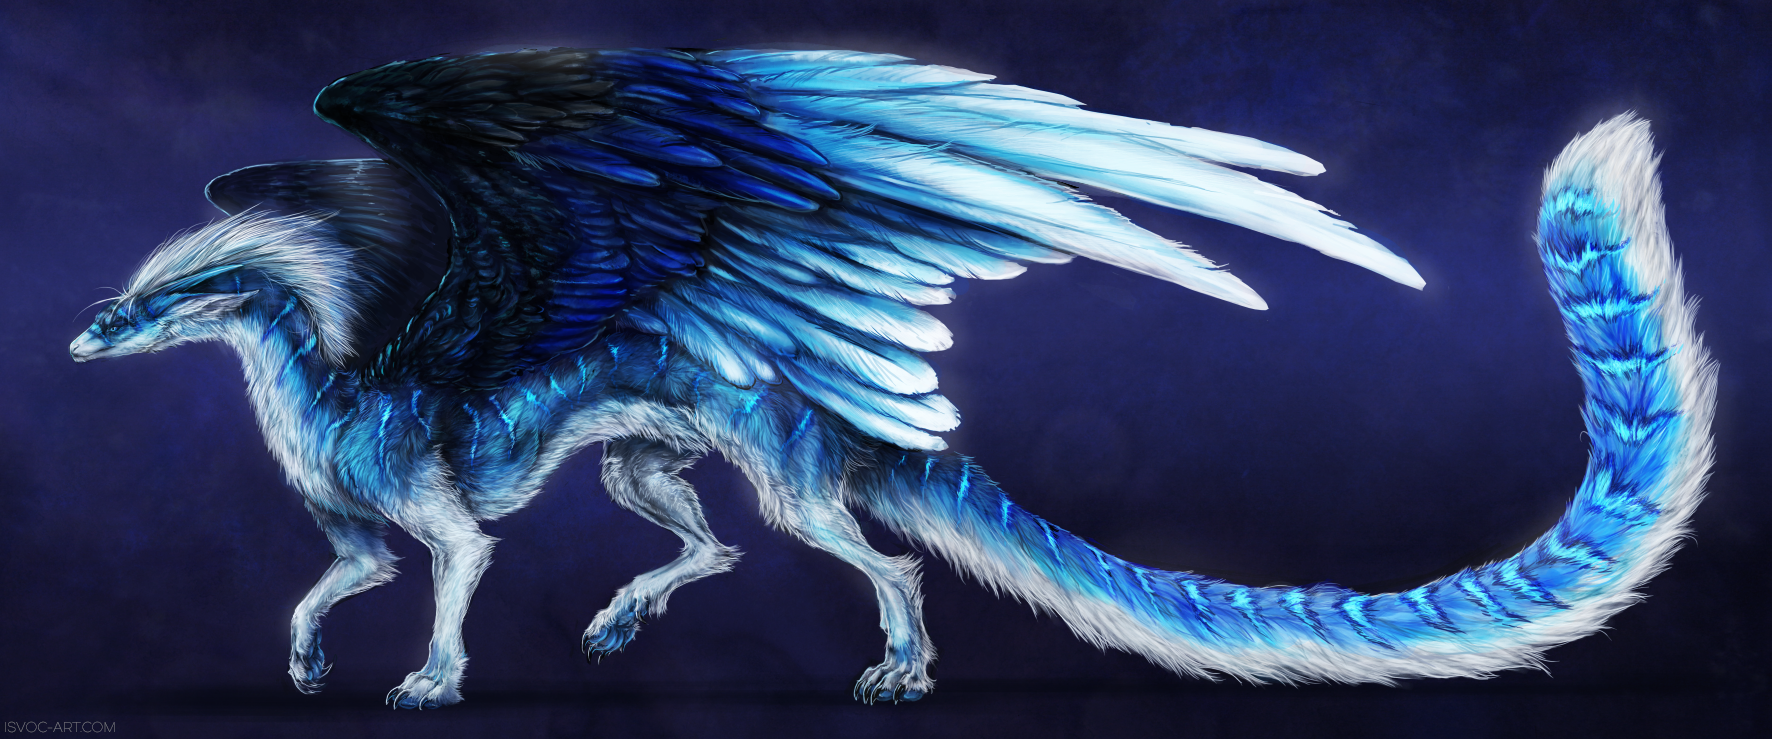 Feathers Of Blue By Isvoc On Deviantart